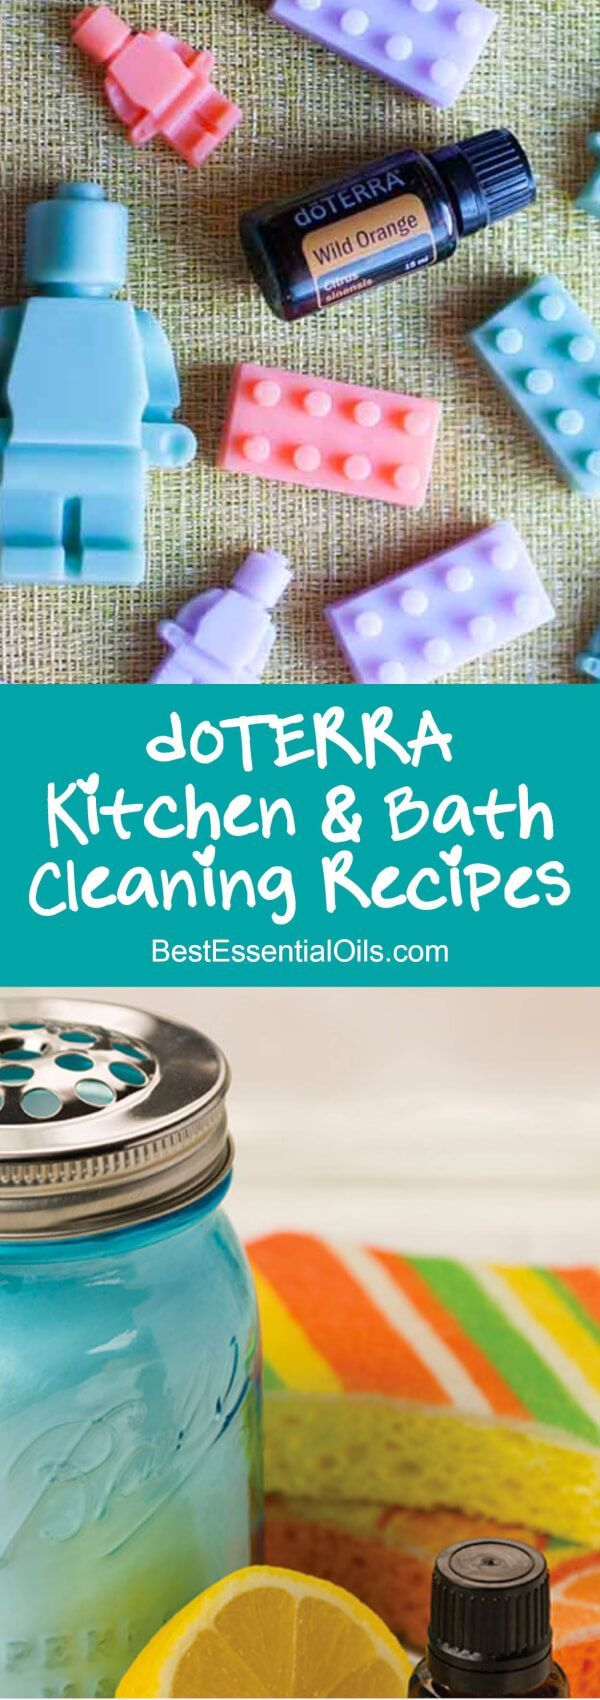 Best DIY doTERRA Essential Oil Kitchen and Bathroom Cleaning Recipes